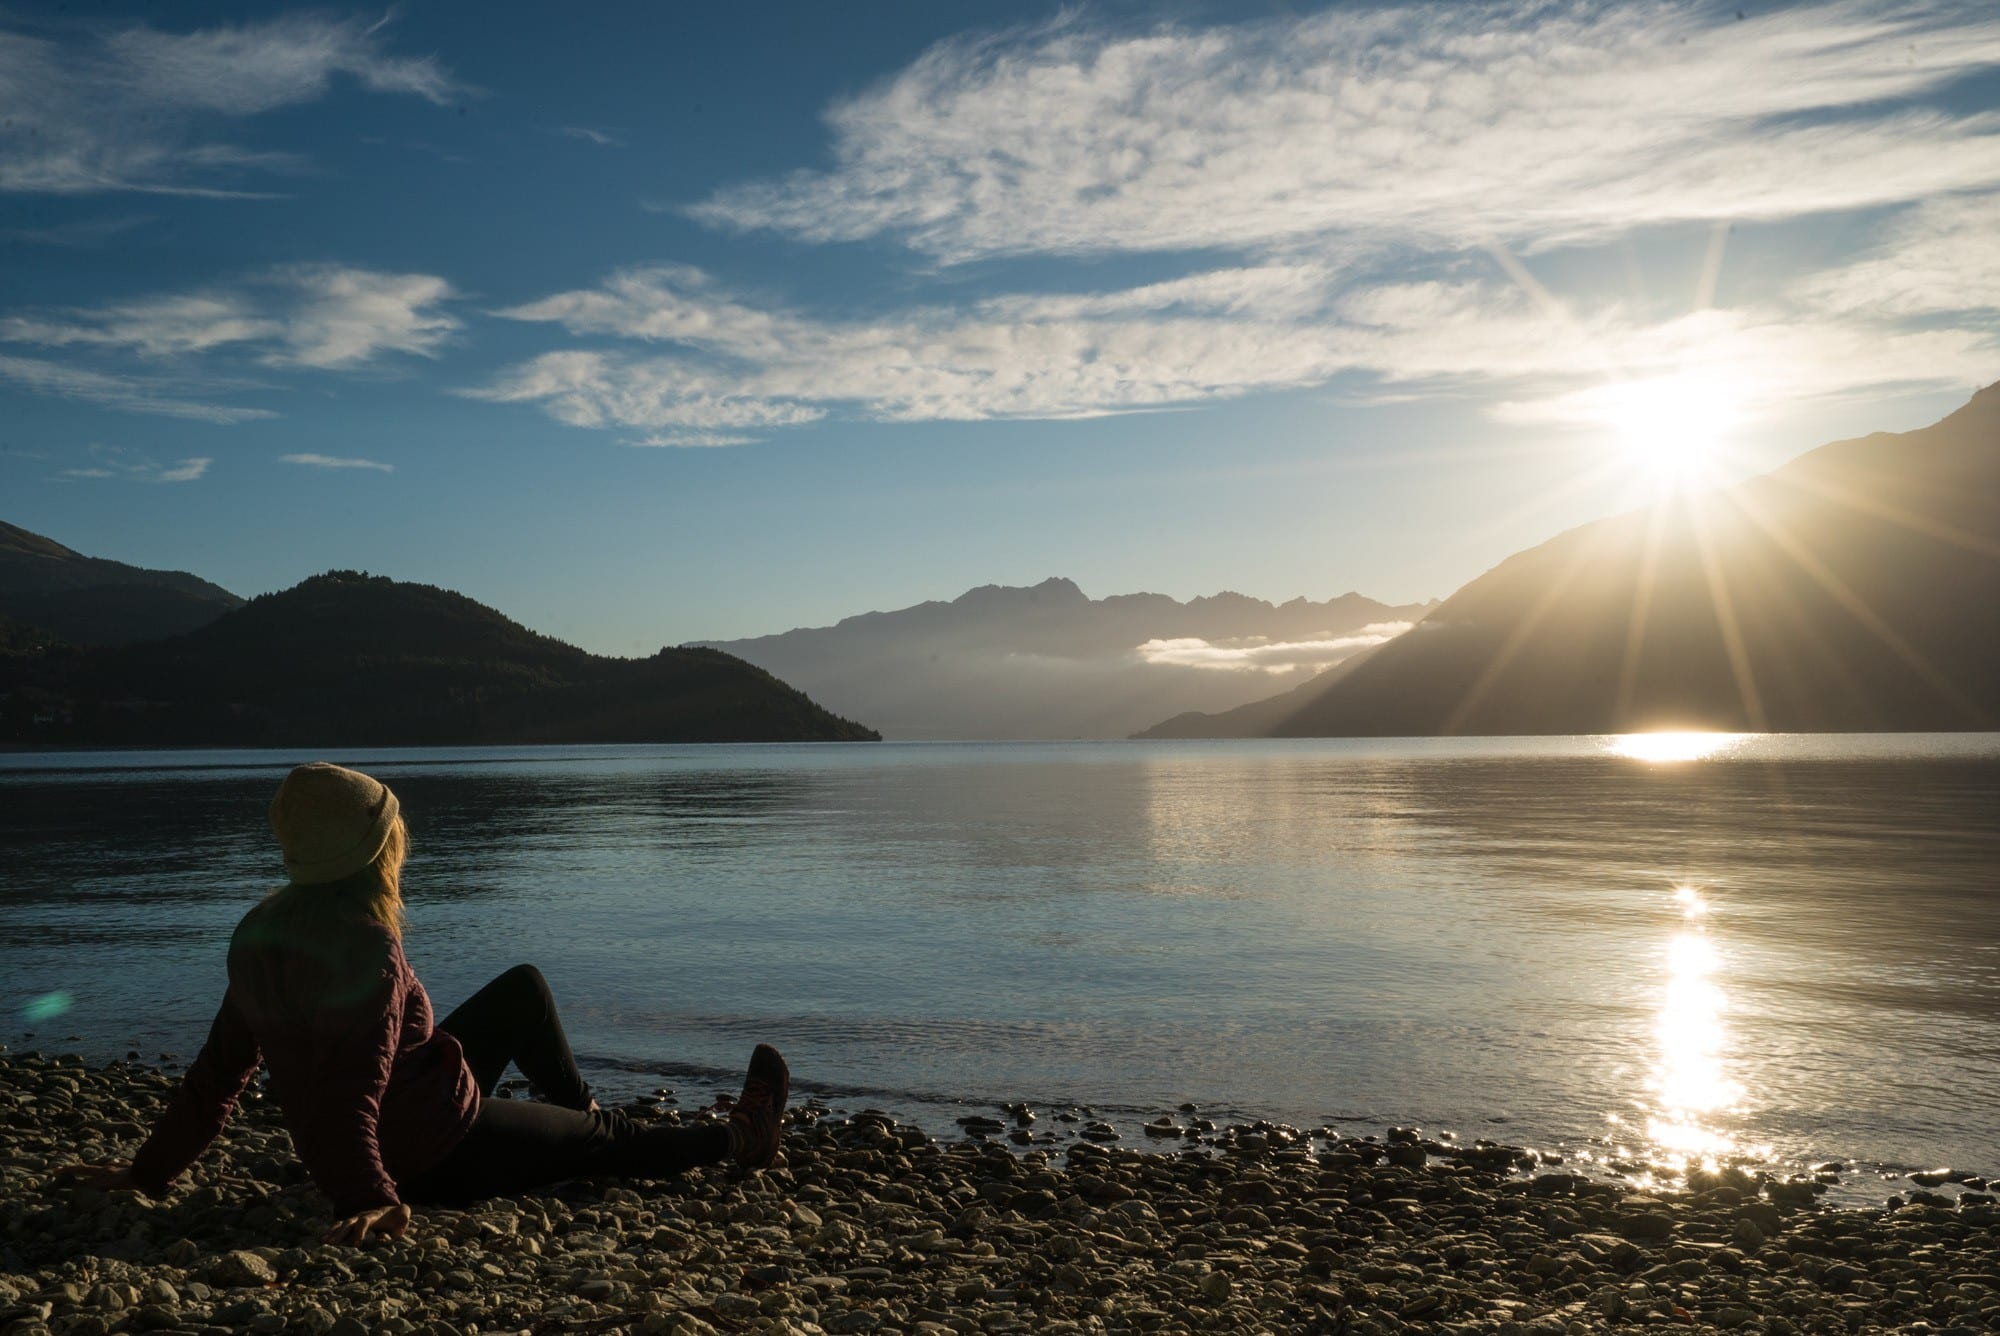 Queenstown Travel Tips: Where to Eat, Stay & Things to Do